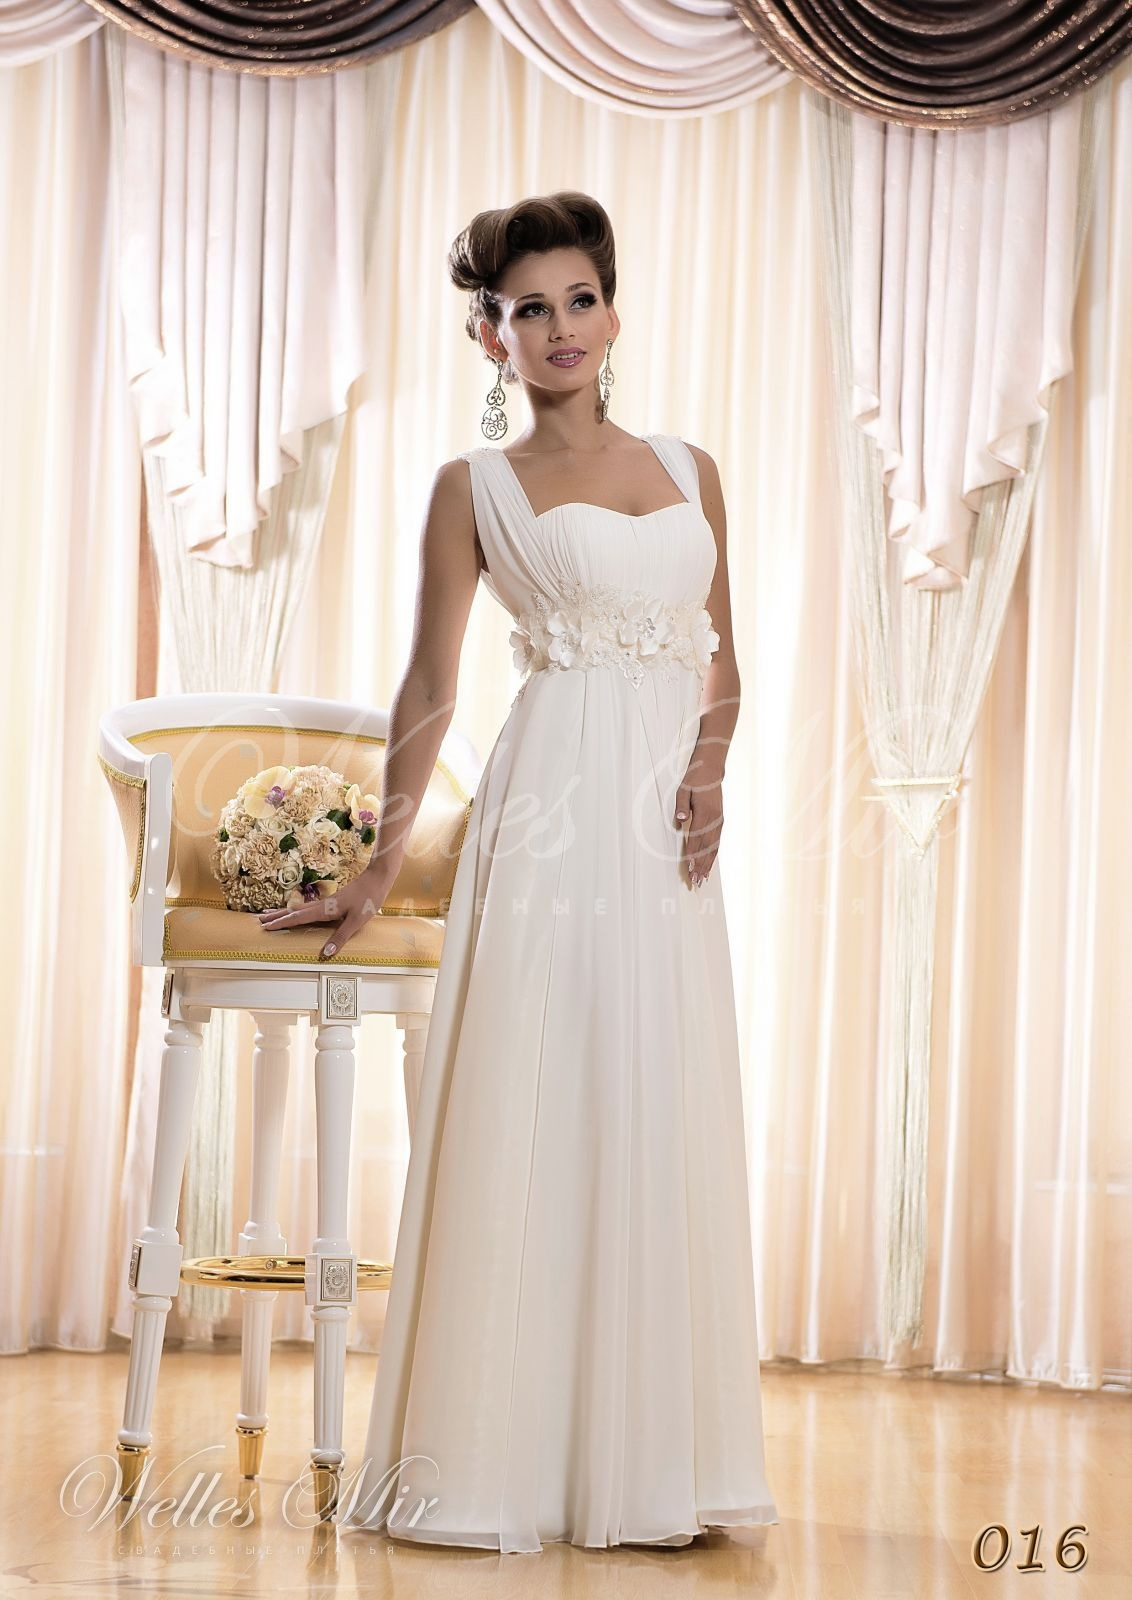 Wedding dresses 016